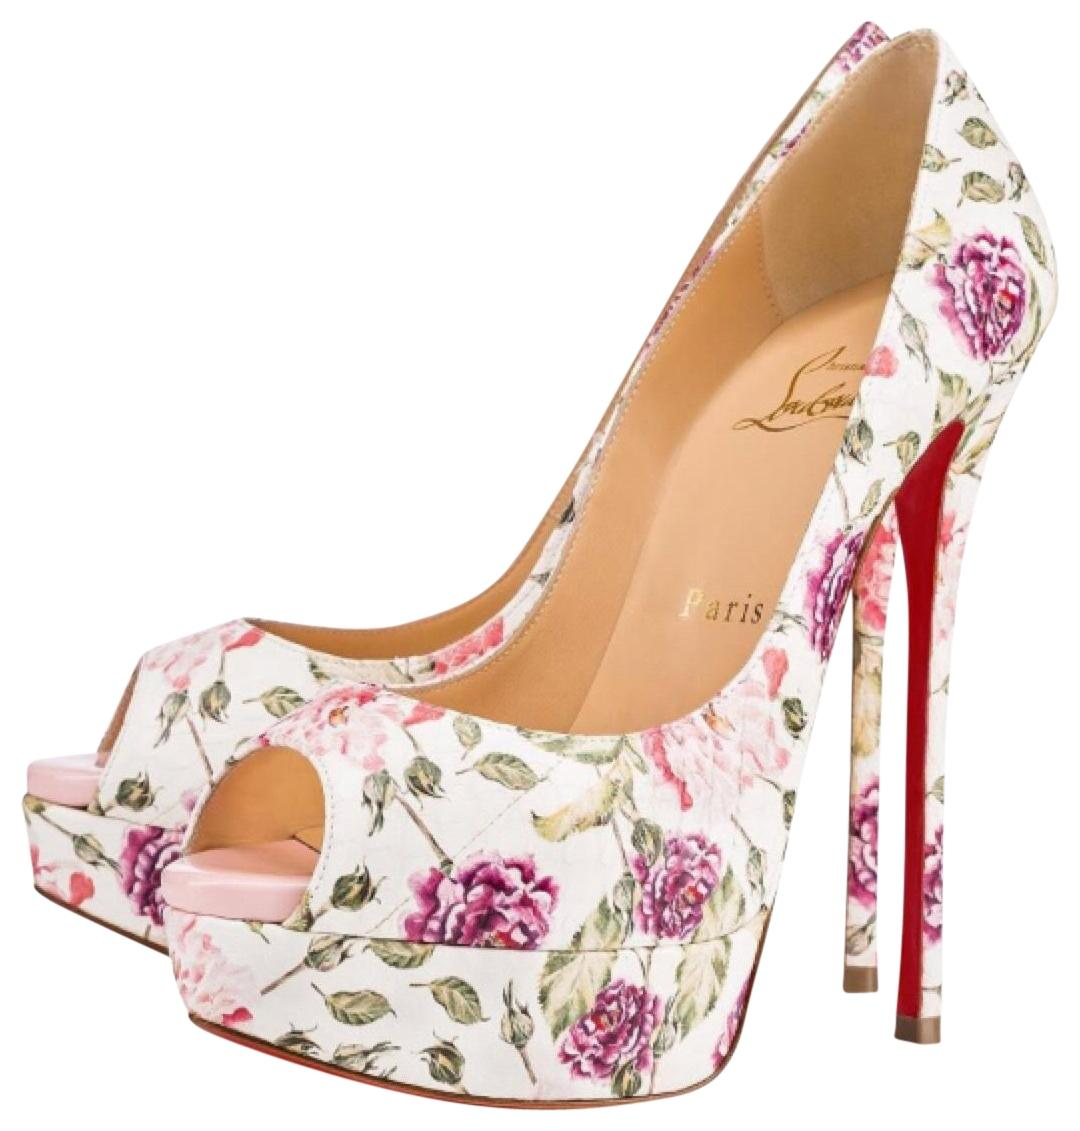 Christian Louboutin White Fetish Peep Toe Floral Stiletto Watersnake Pumps Size EU 38.5 (Approx. US 8.5) Regular (M, B)